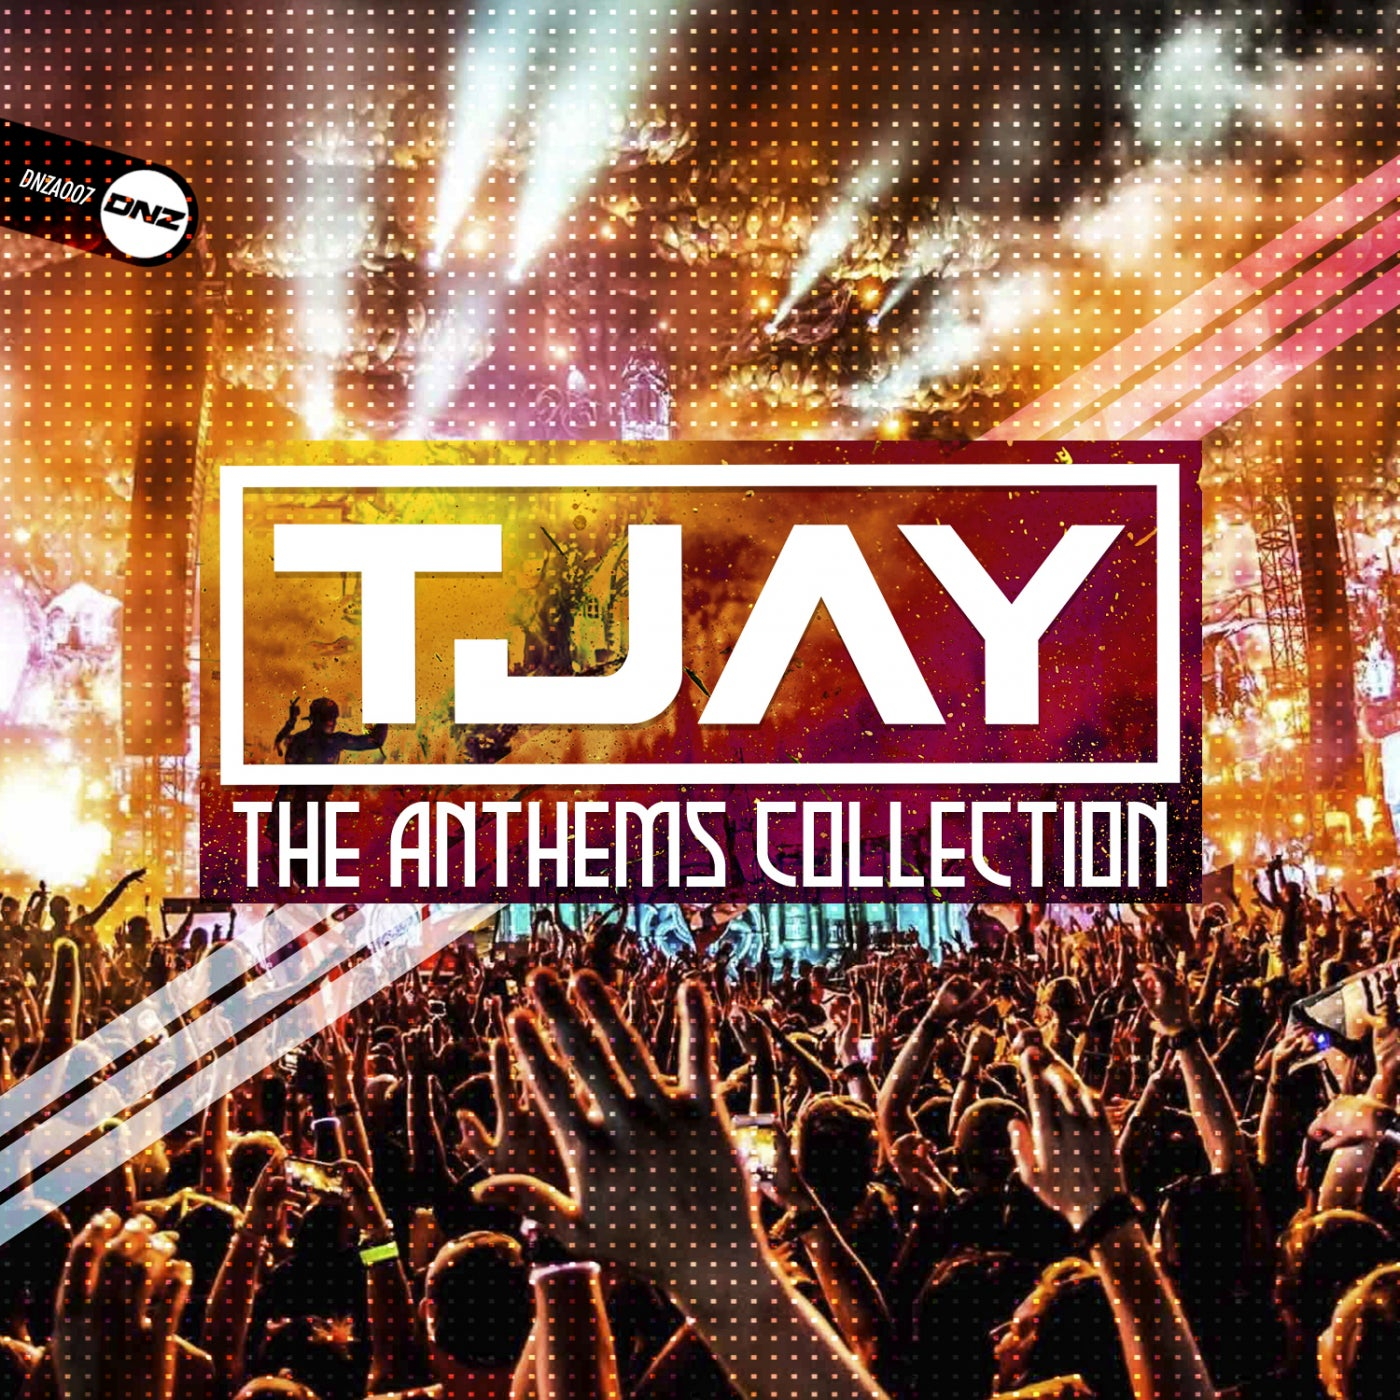 The Anthems Collection